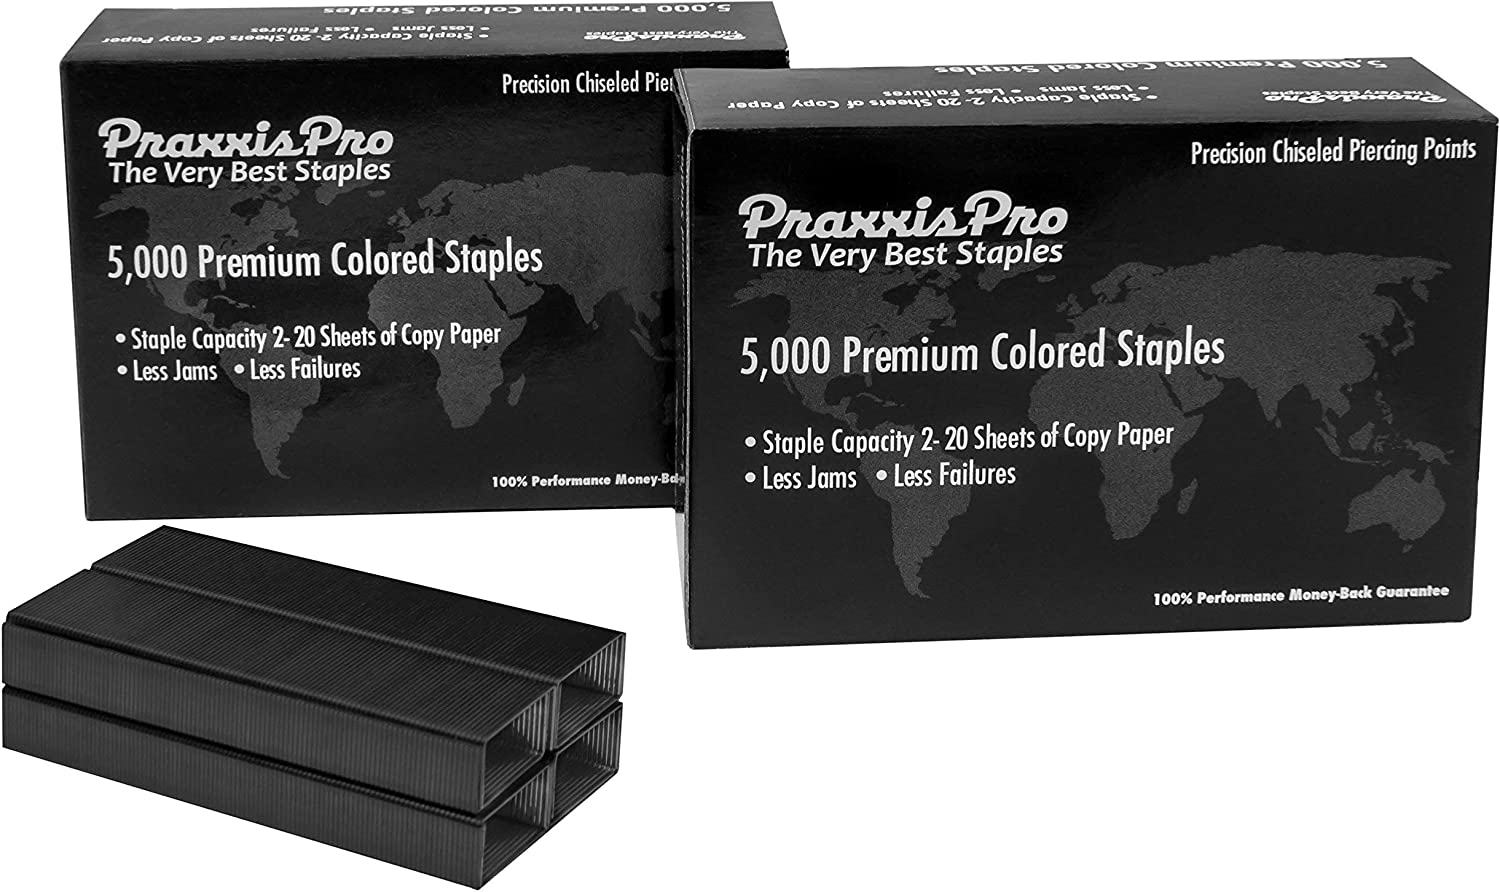 Premium 26 6 Chisel Point Standard Portland Mall Staples Branded goods 10 Colored 000 Count